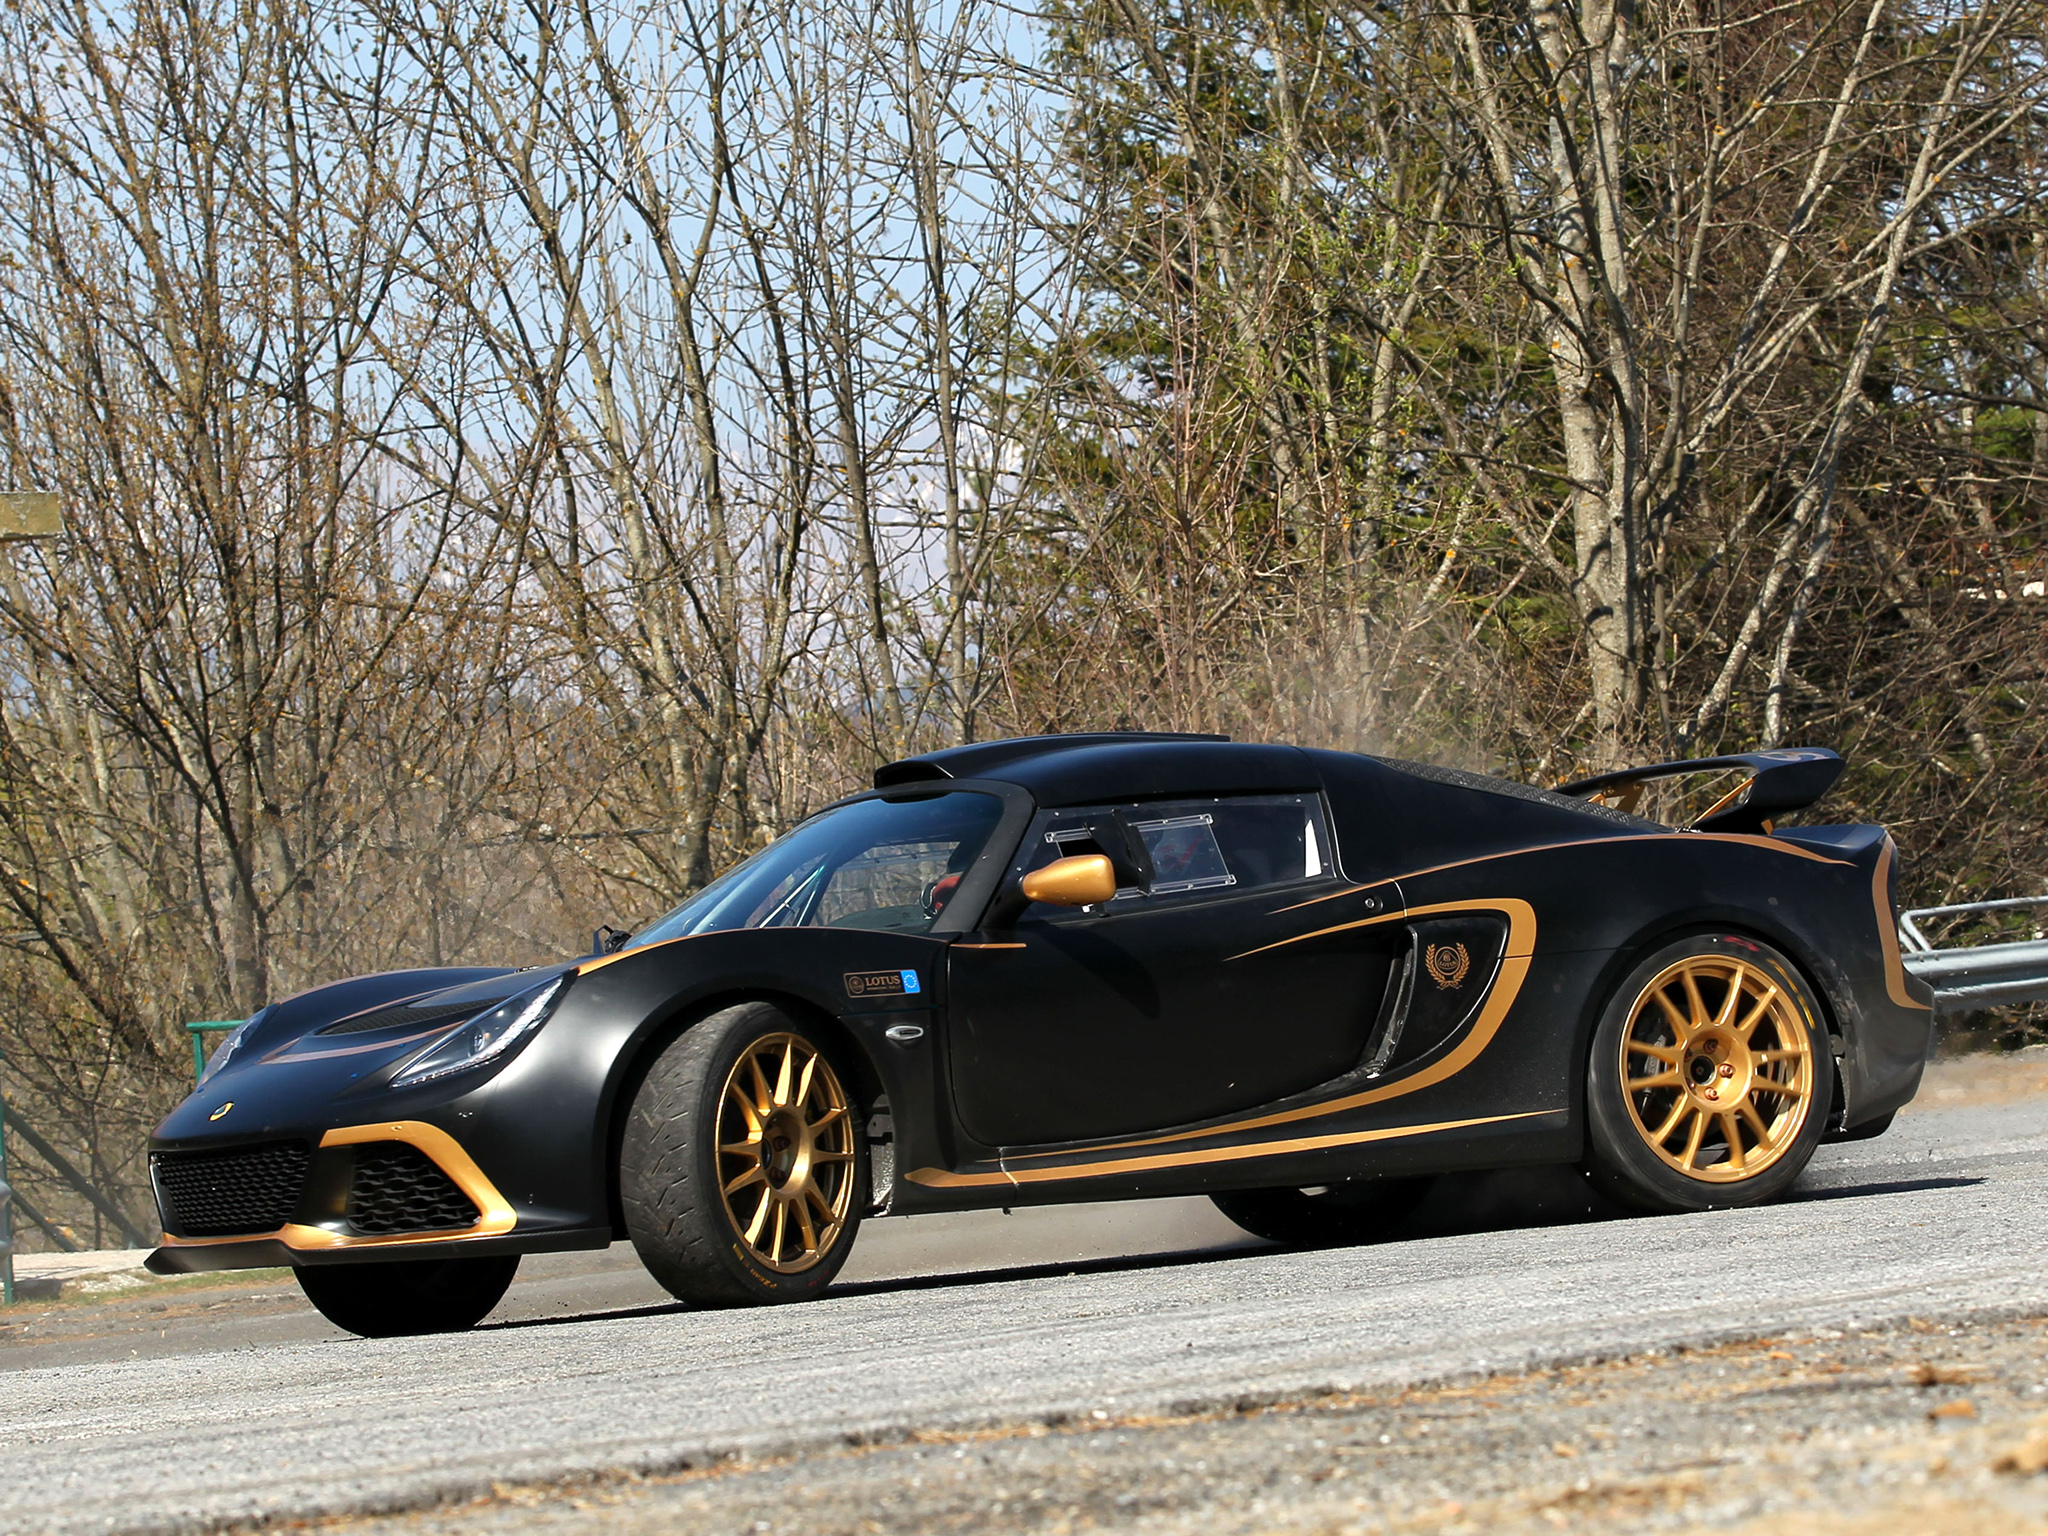 Lotus Exige R Gt Picture 90613 Lotus Photo Gallery Carsbase Com